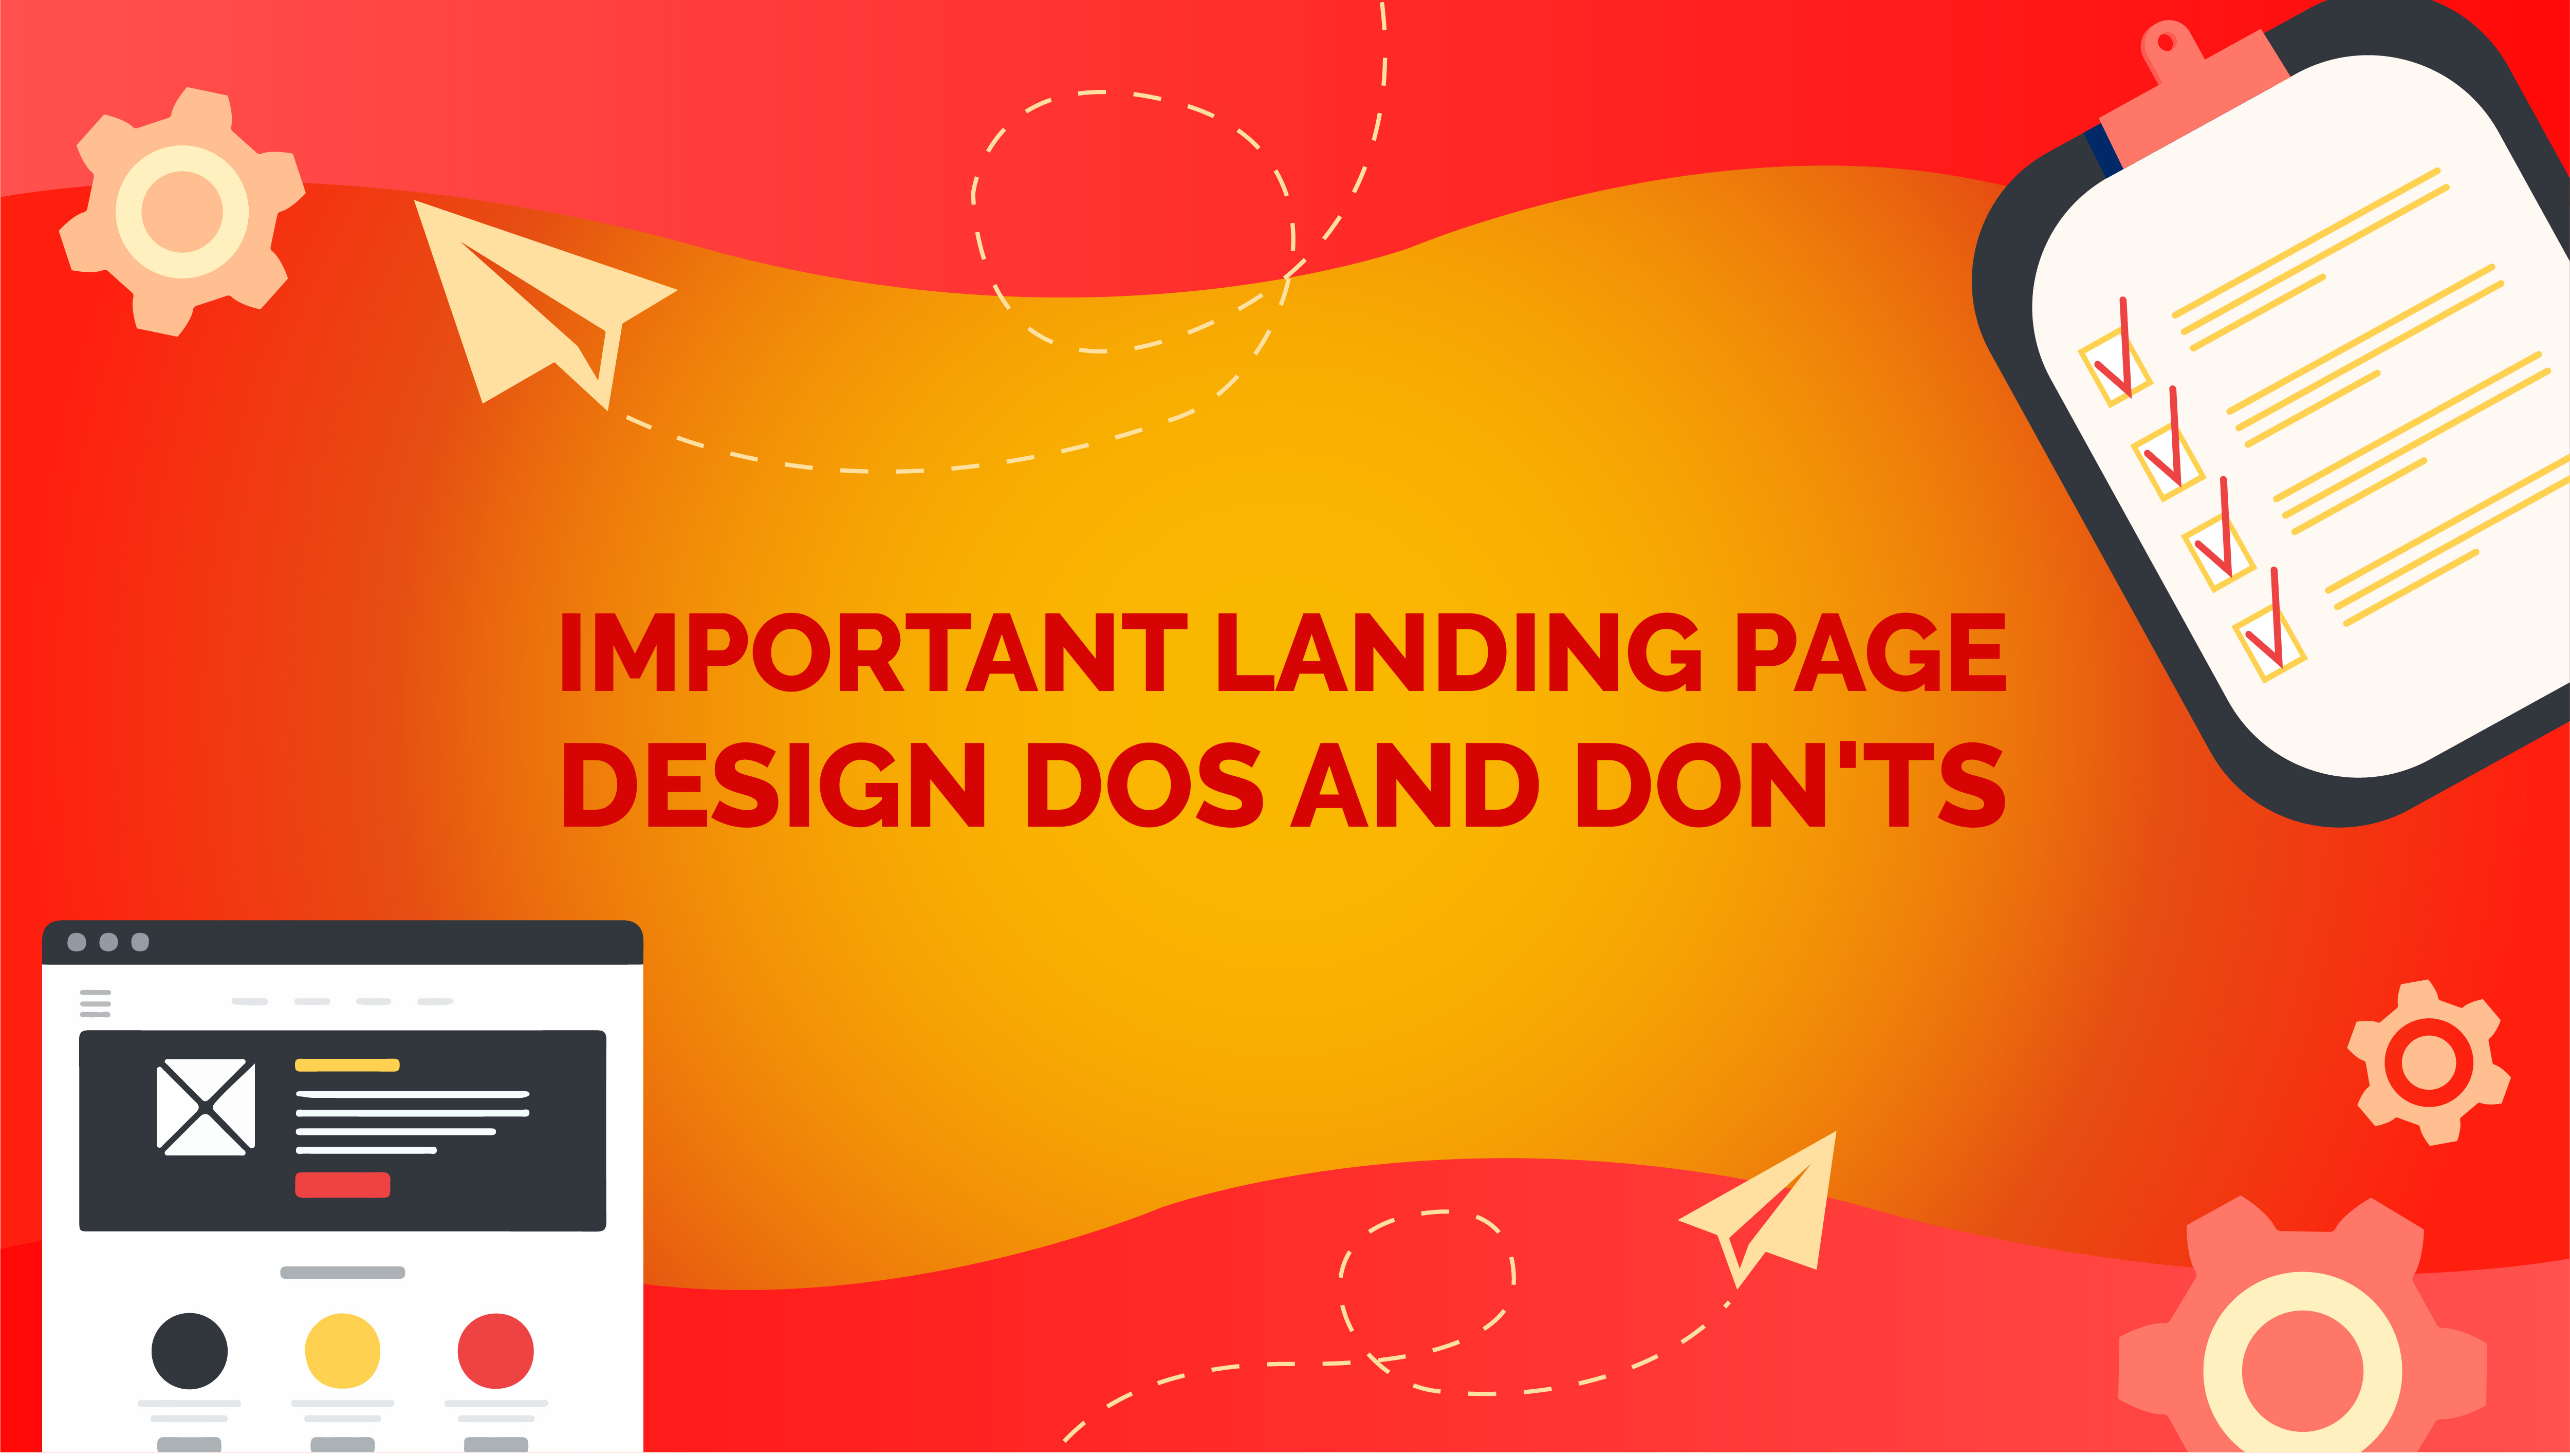 Important Landing Page Design Dos and Don'ts